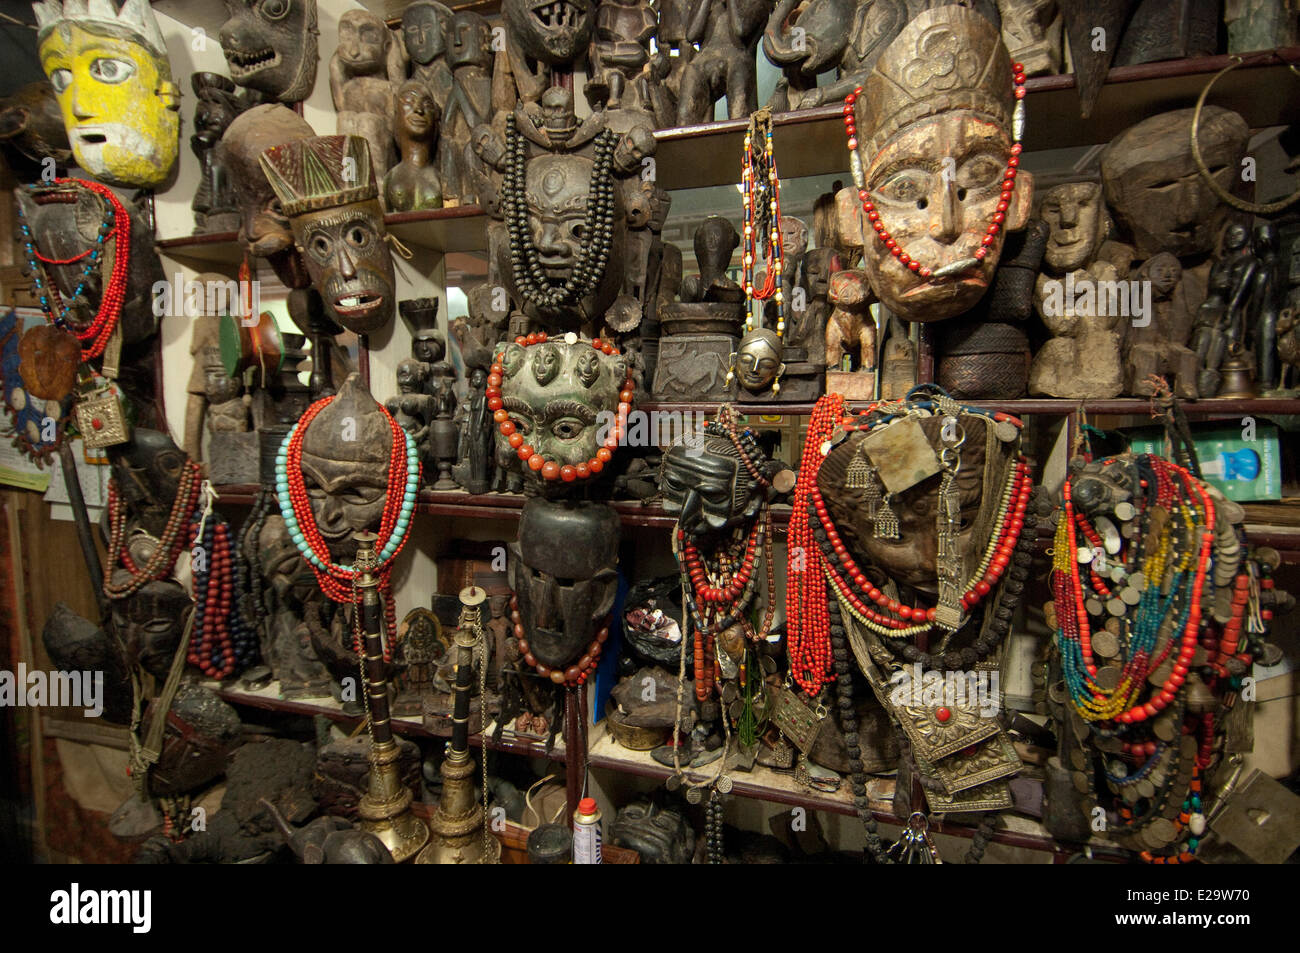 Nepal, Bagmati Zone, Kathmandu, shop specialized in antiques and Chamanism artefacts - Stock Image